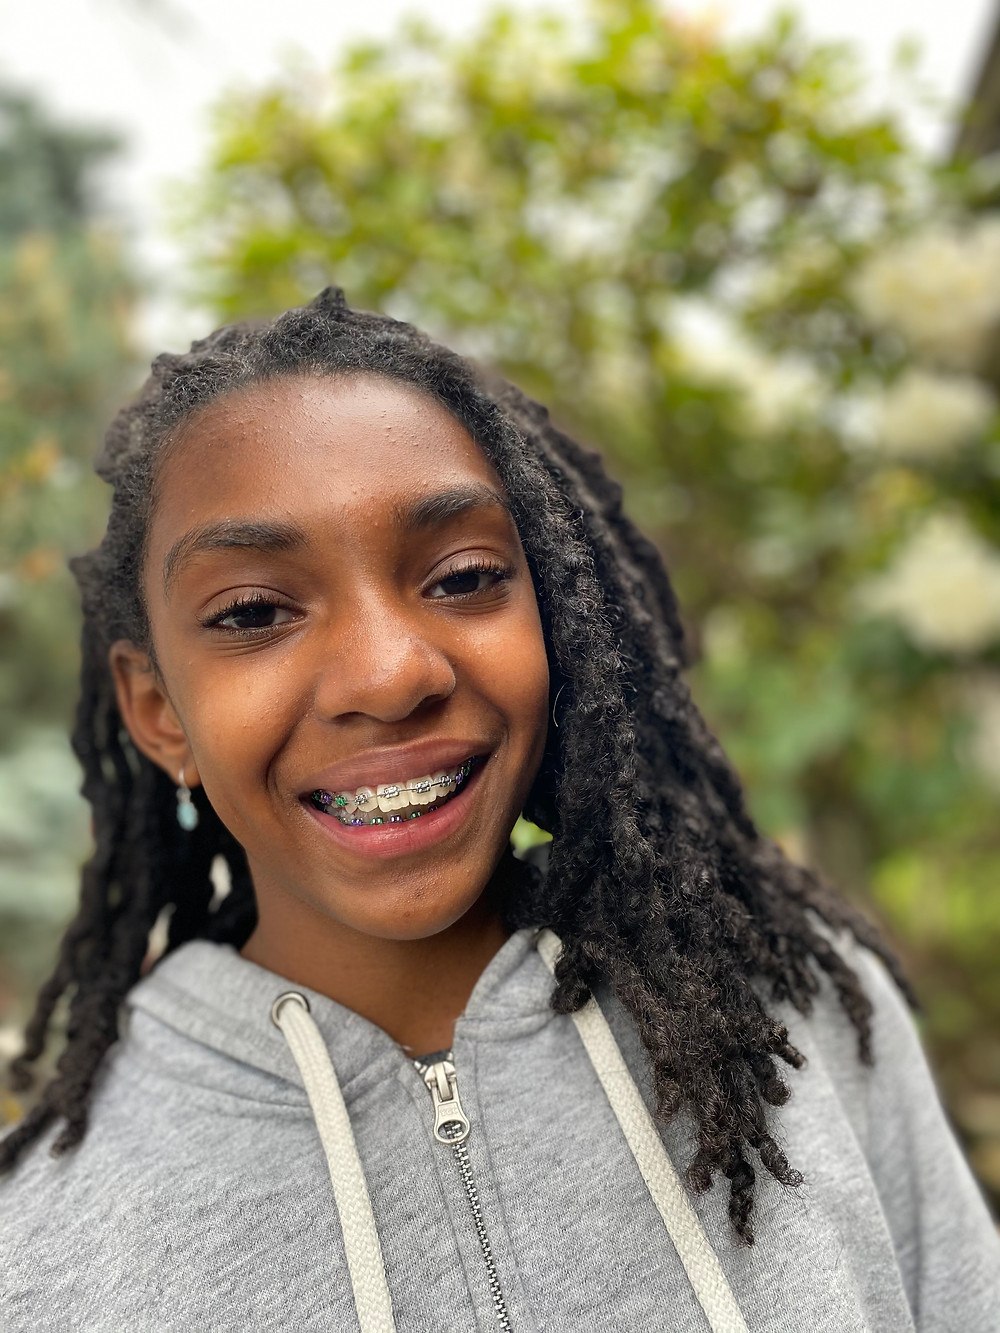 Heaven, an 11 year old Black girl with locs down to her shoulders and braces, grins at the camera with trees behind her in a grey sweatshirt.